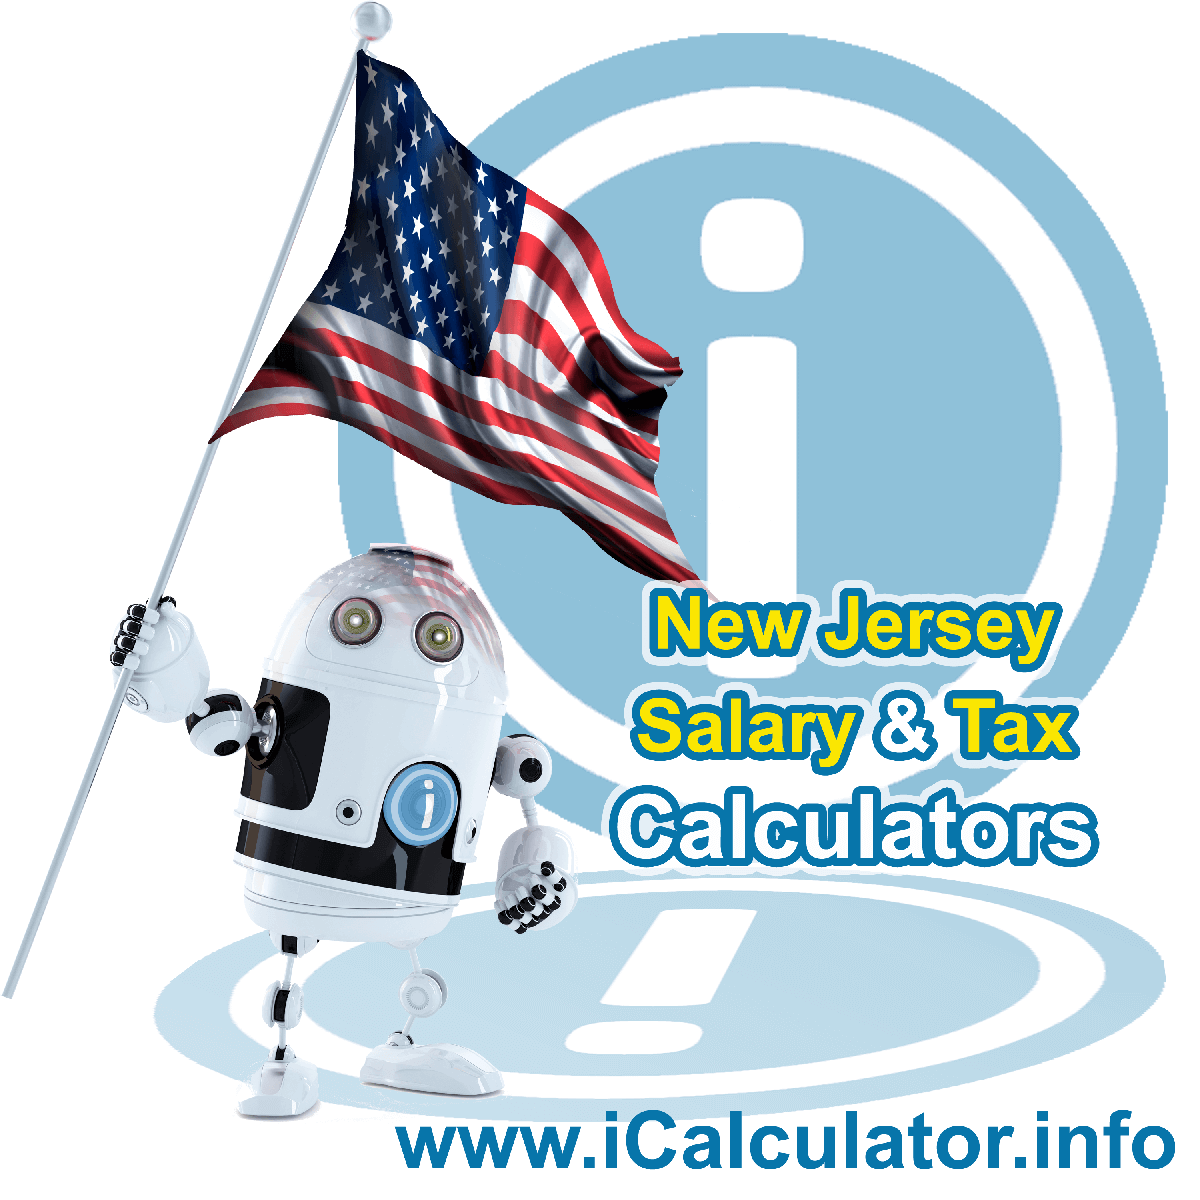 New Jersey Salary Calculator 2019 | iCalculator | The New Jersey Salary Calculator allows you to quickly calculate your salary after tax including New Jersey State Tax, Federal State Tax, Medicare Deductions, Social Security, Capital Gains and other income tax and salary deductions complete with supporting New Jersey state tax tables